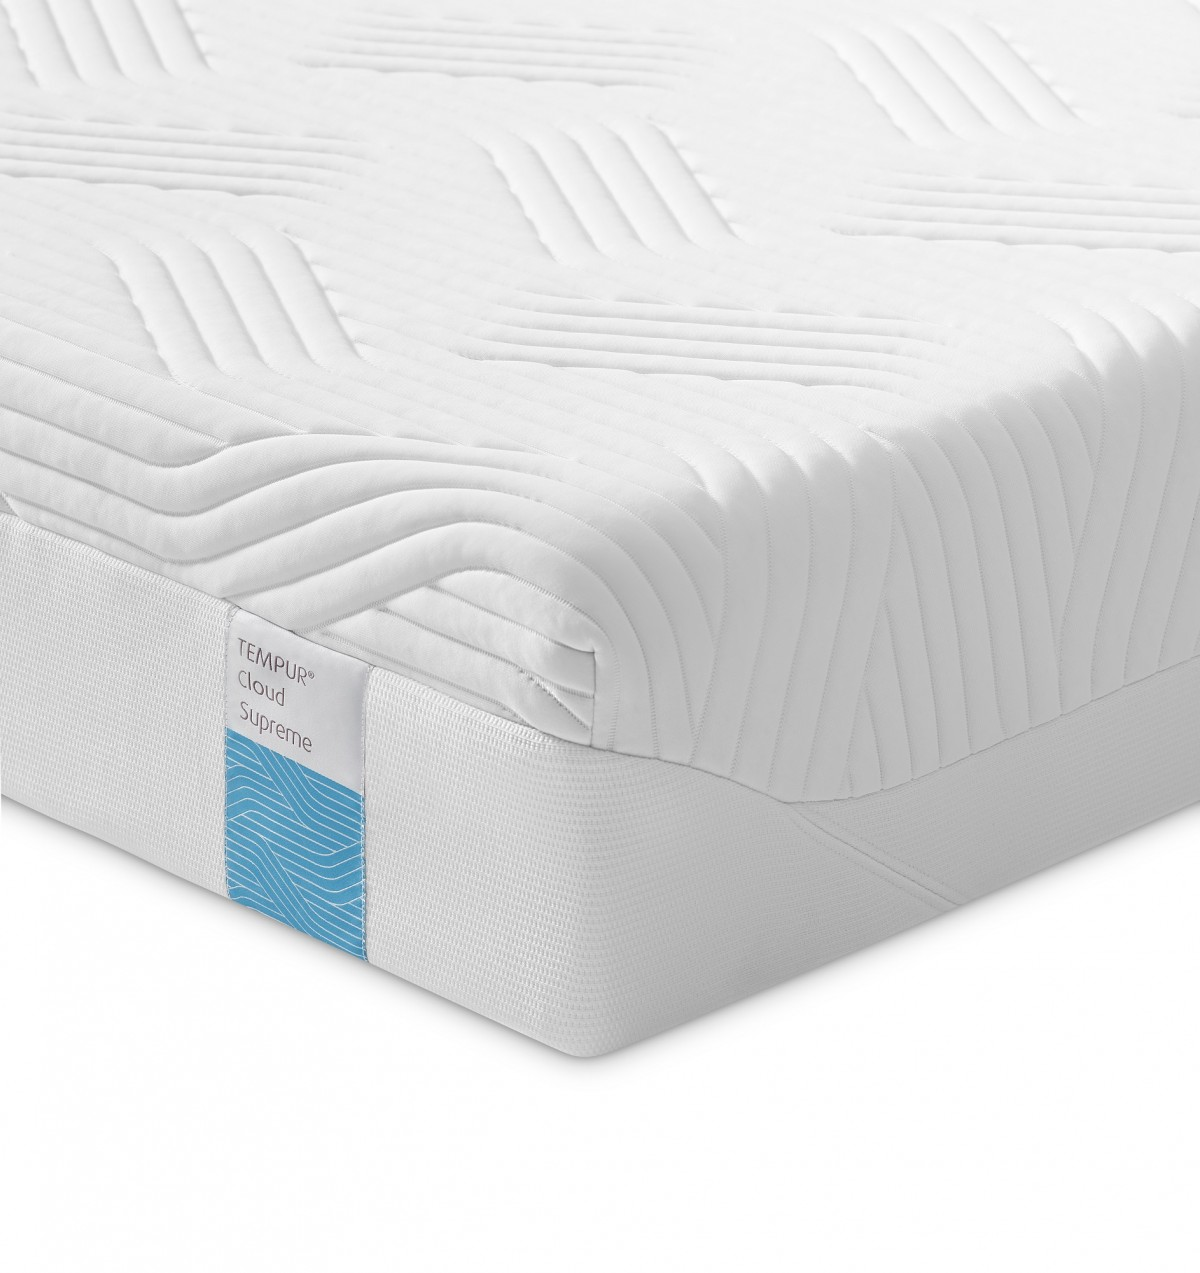 Tempur Cloud Supreme Mattress